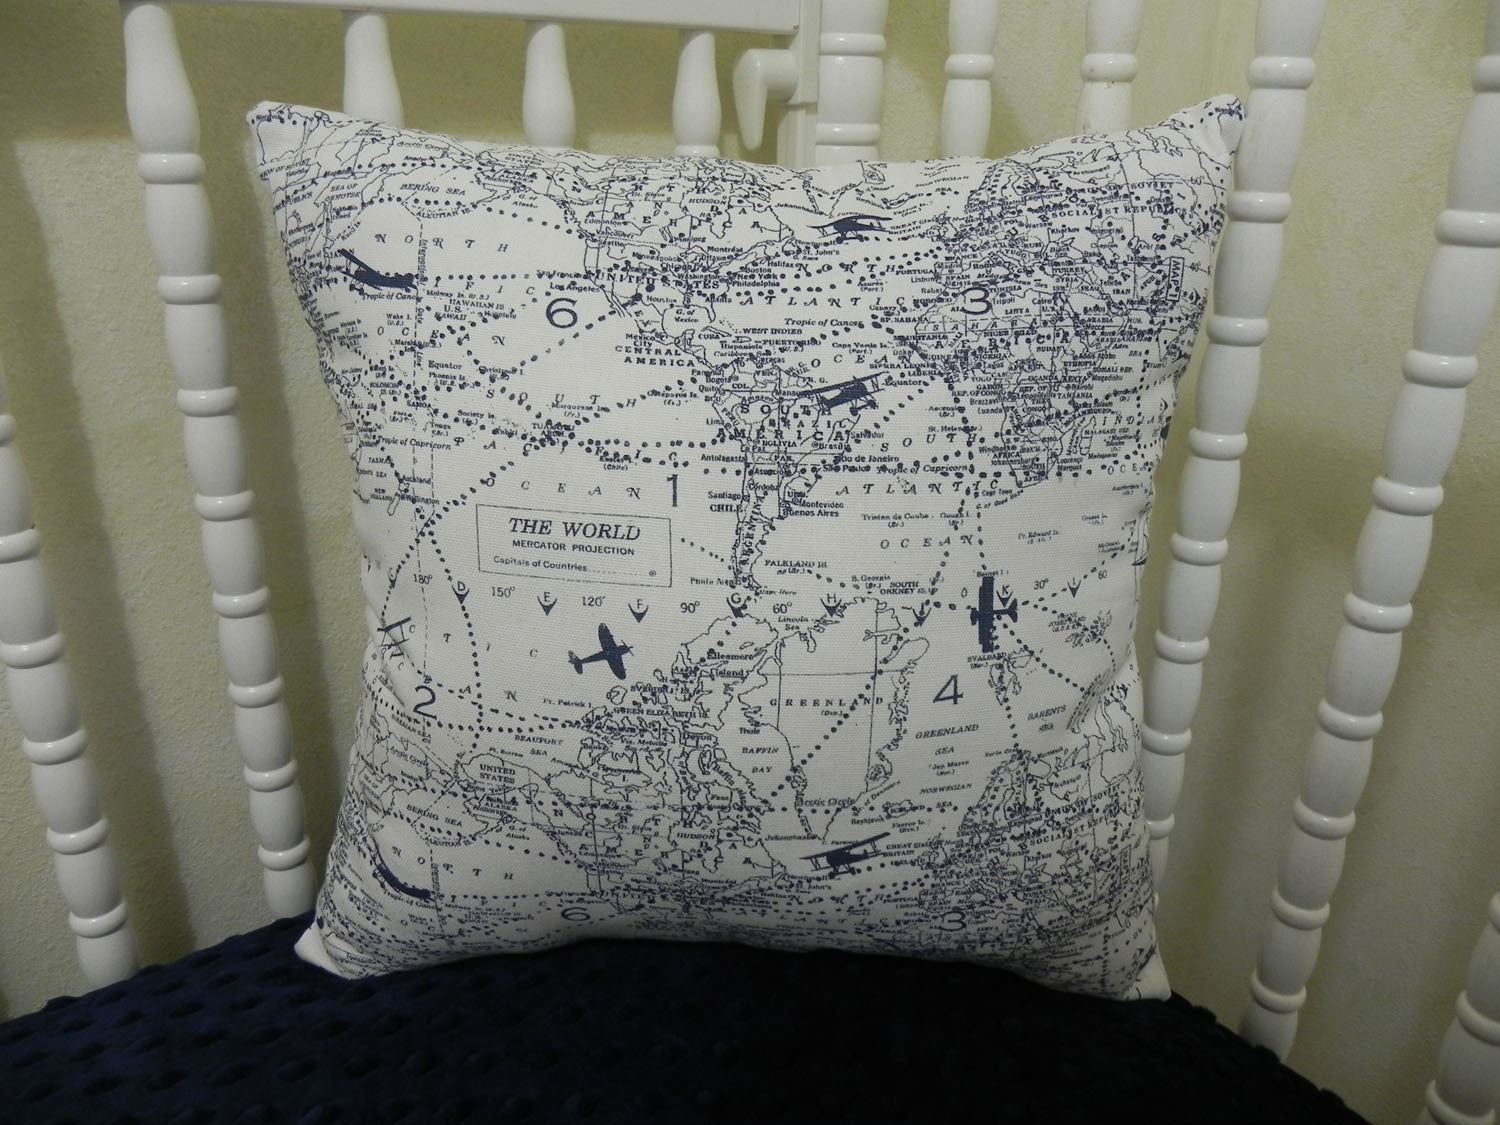 Navy and White Airplane Bedding Set Hayes- Boy Baby Bedding, Air Traffic Map Bedding on map sheet, map home decor, map drawing, map market garden, map paper, map quilt, map furniture, map gallery wall, map blanket, map games, map travel, map office decor, map wallpaper, map room ideas, map pillow, map dishes, map crib set, map baby nursery, map shower curtain, map themed bedroom,